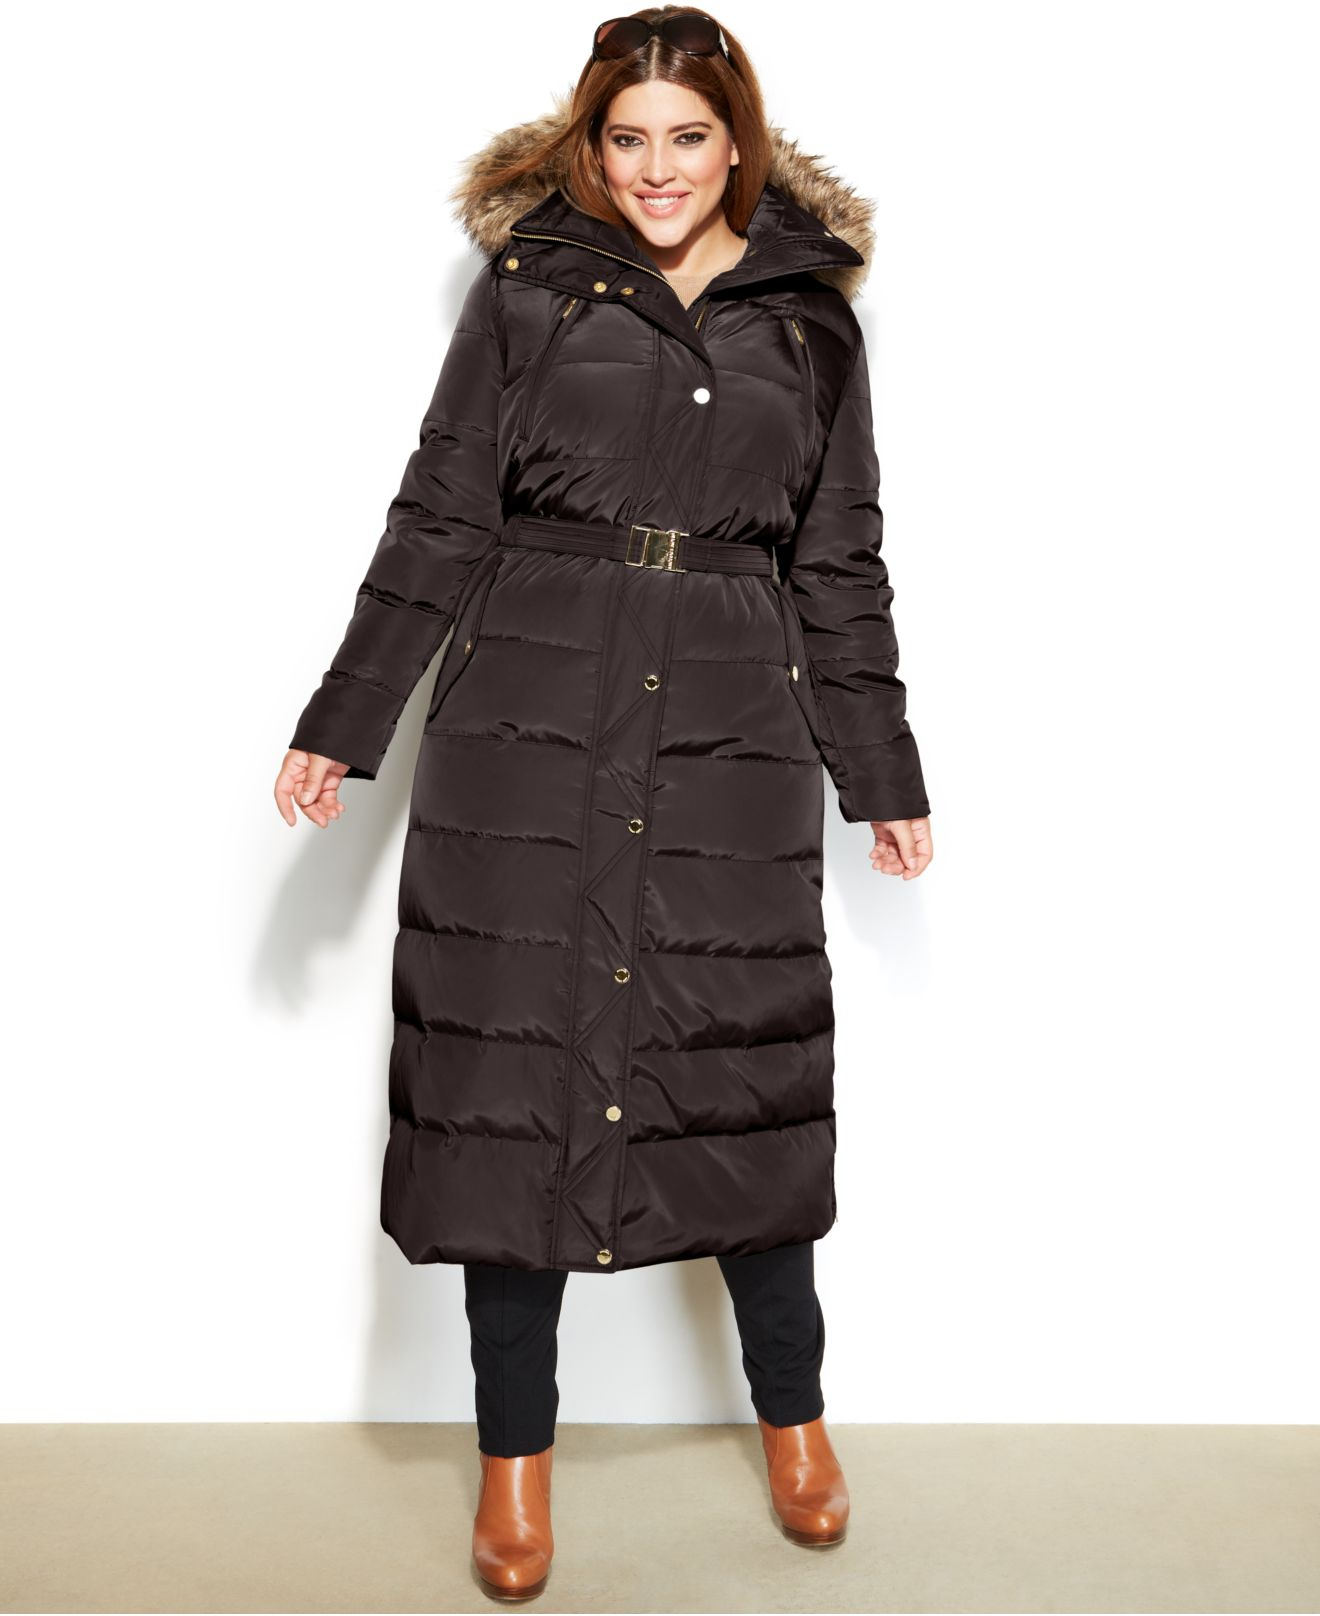 3a151aa561ffc Lyst - Michael Kors Michael Plus Size Hooded Faux-Fur-Trim Belted ...